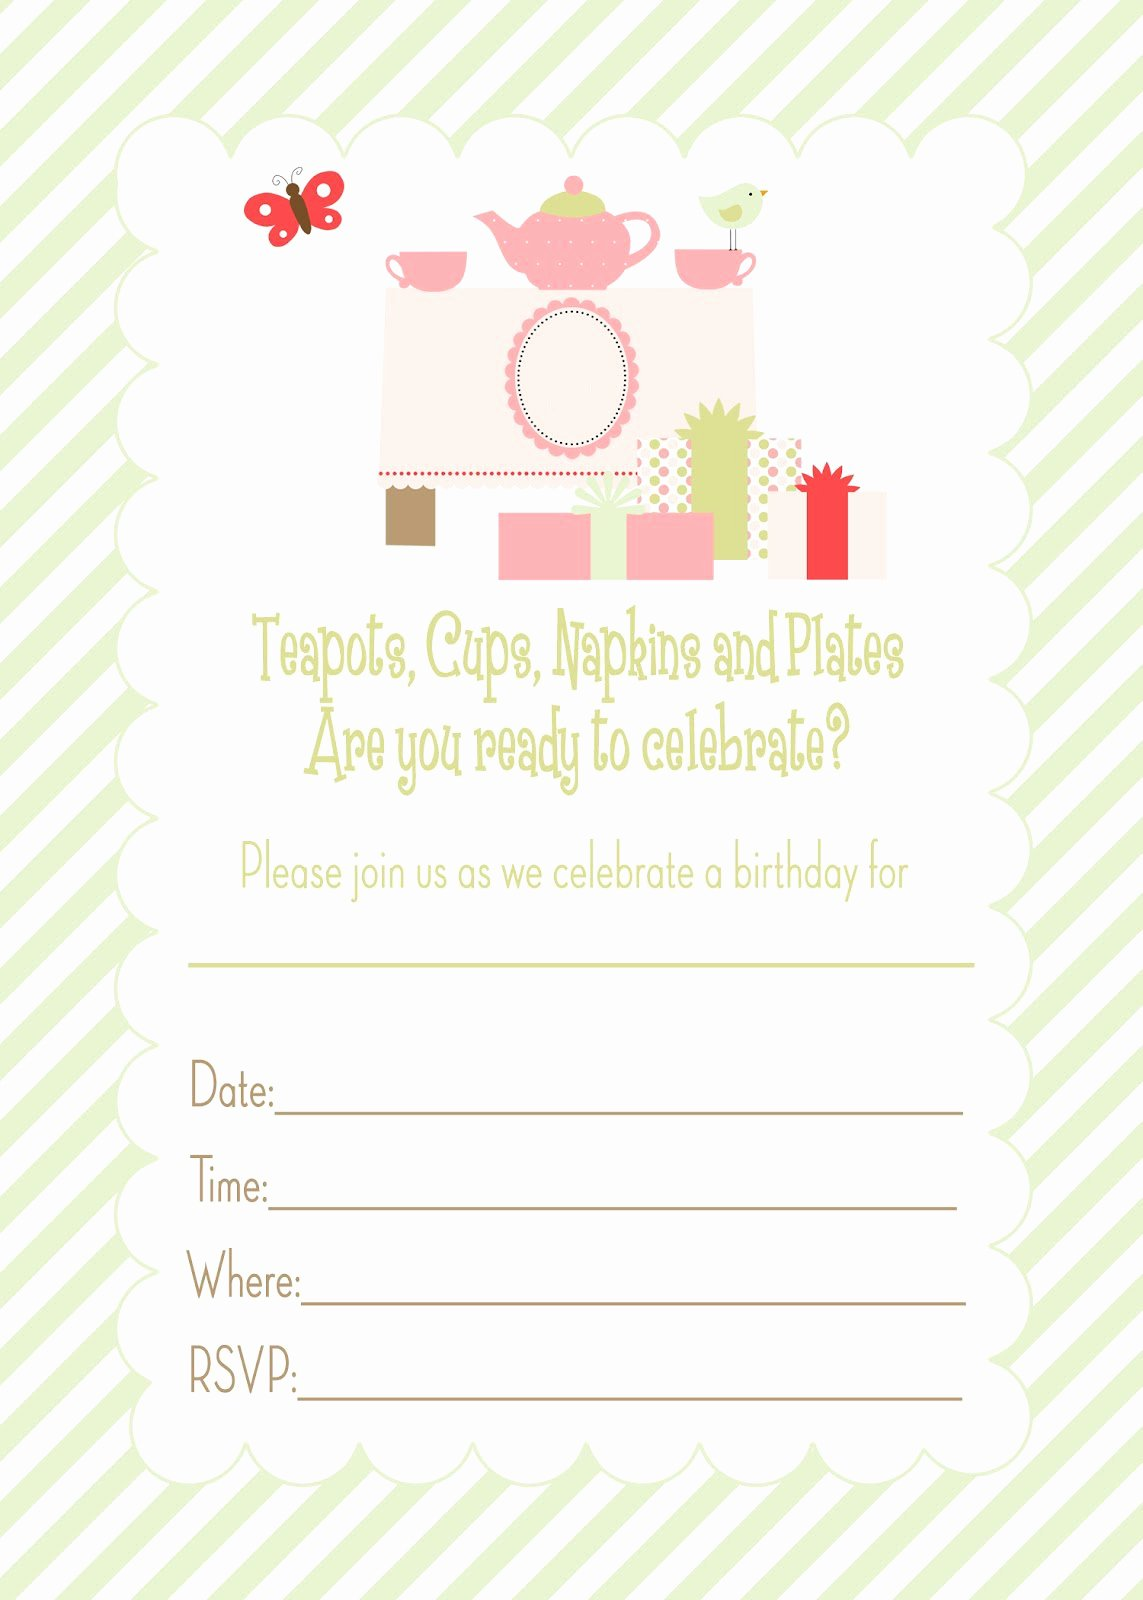 Party Invitation Template Printable Awesome Generic Birthday Invitations